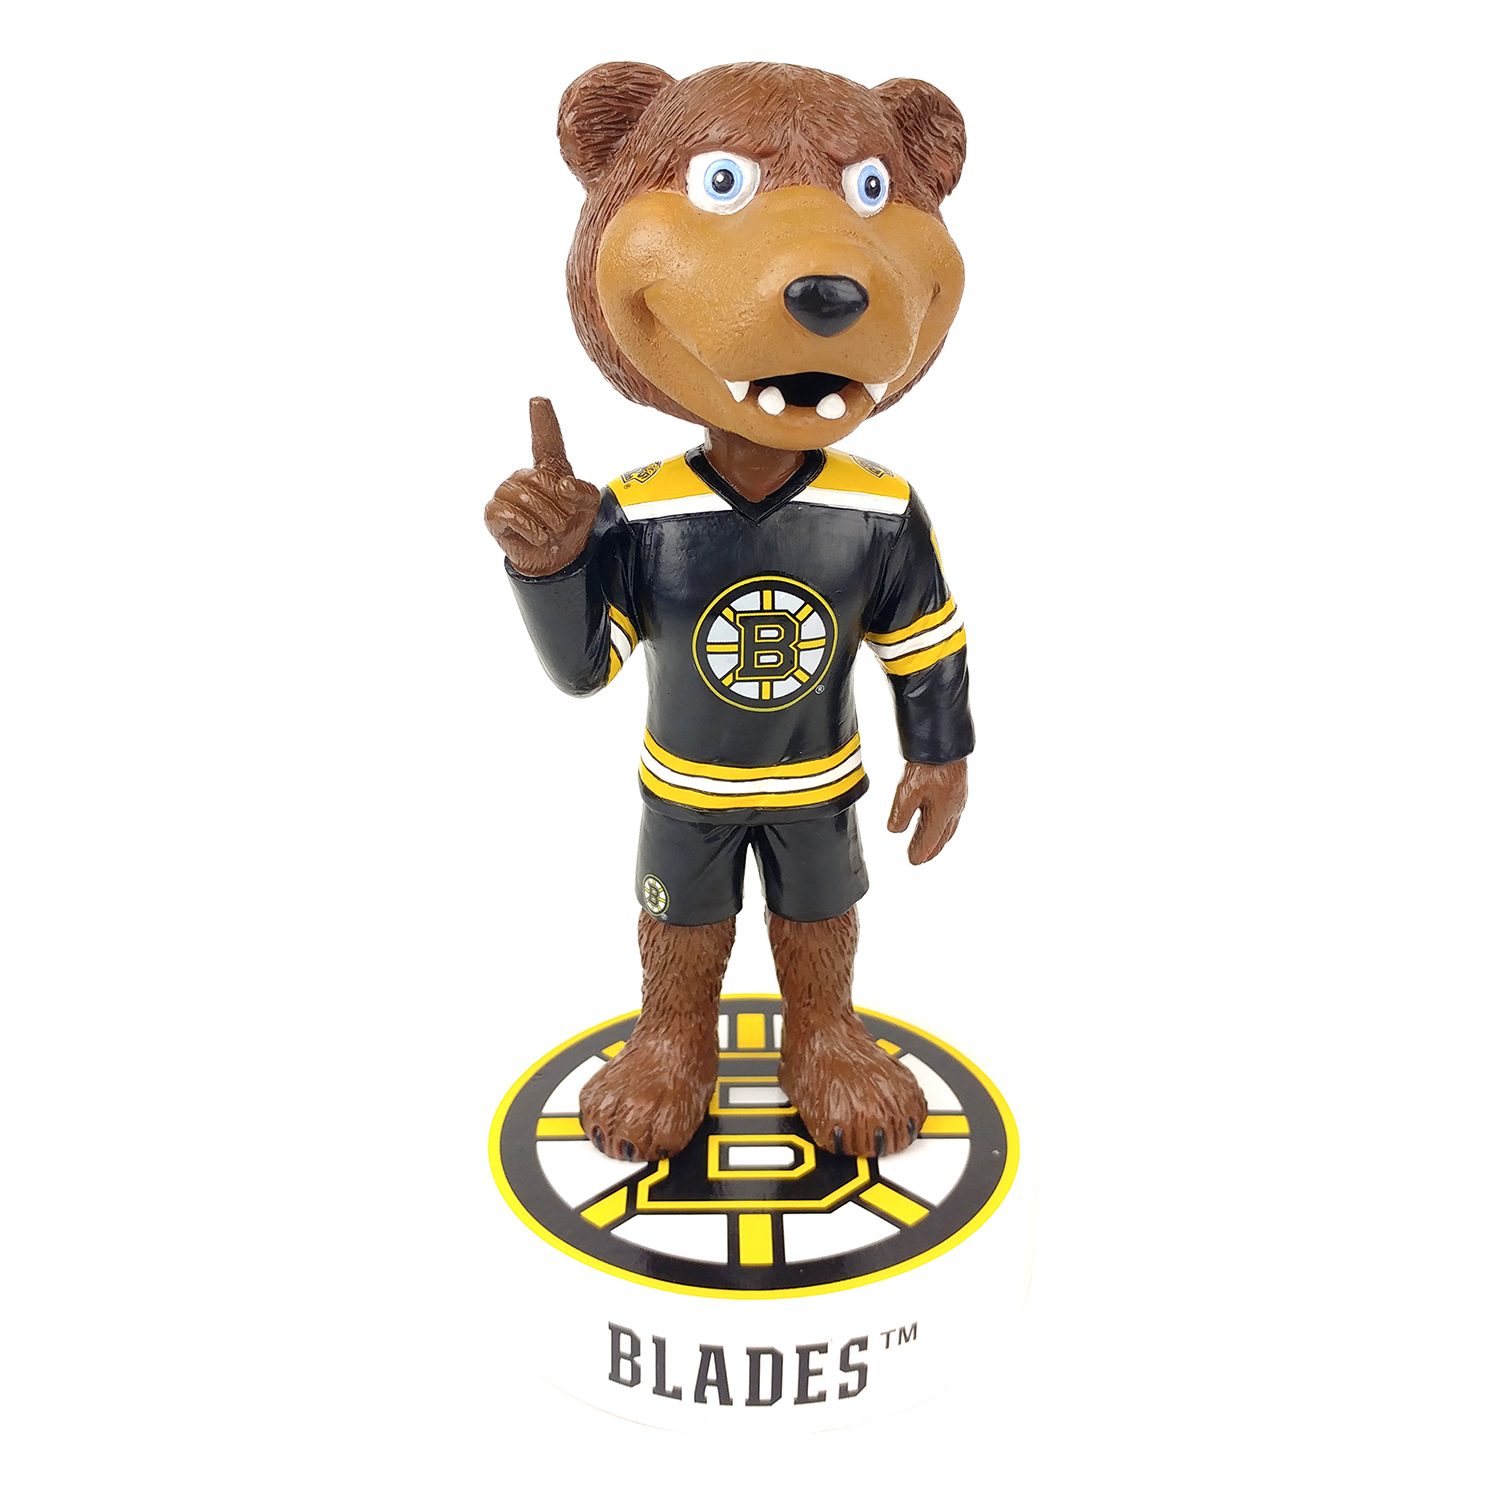 Boston Bruins Blades Mascot Bobblehead Gallery